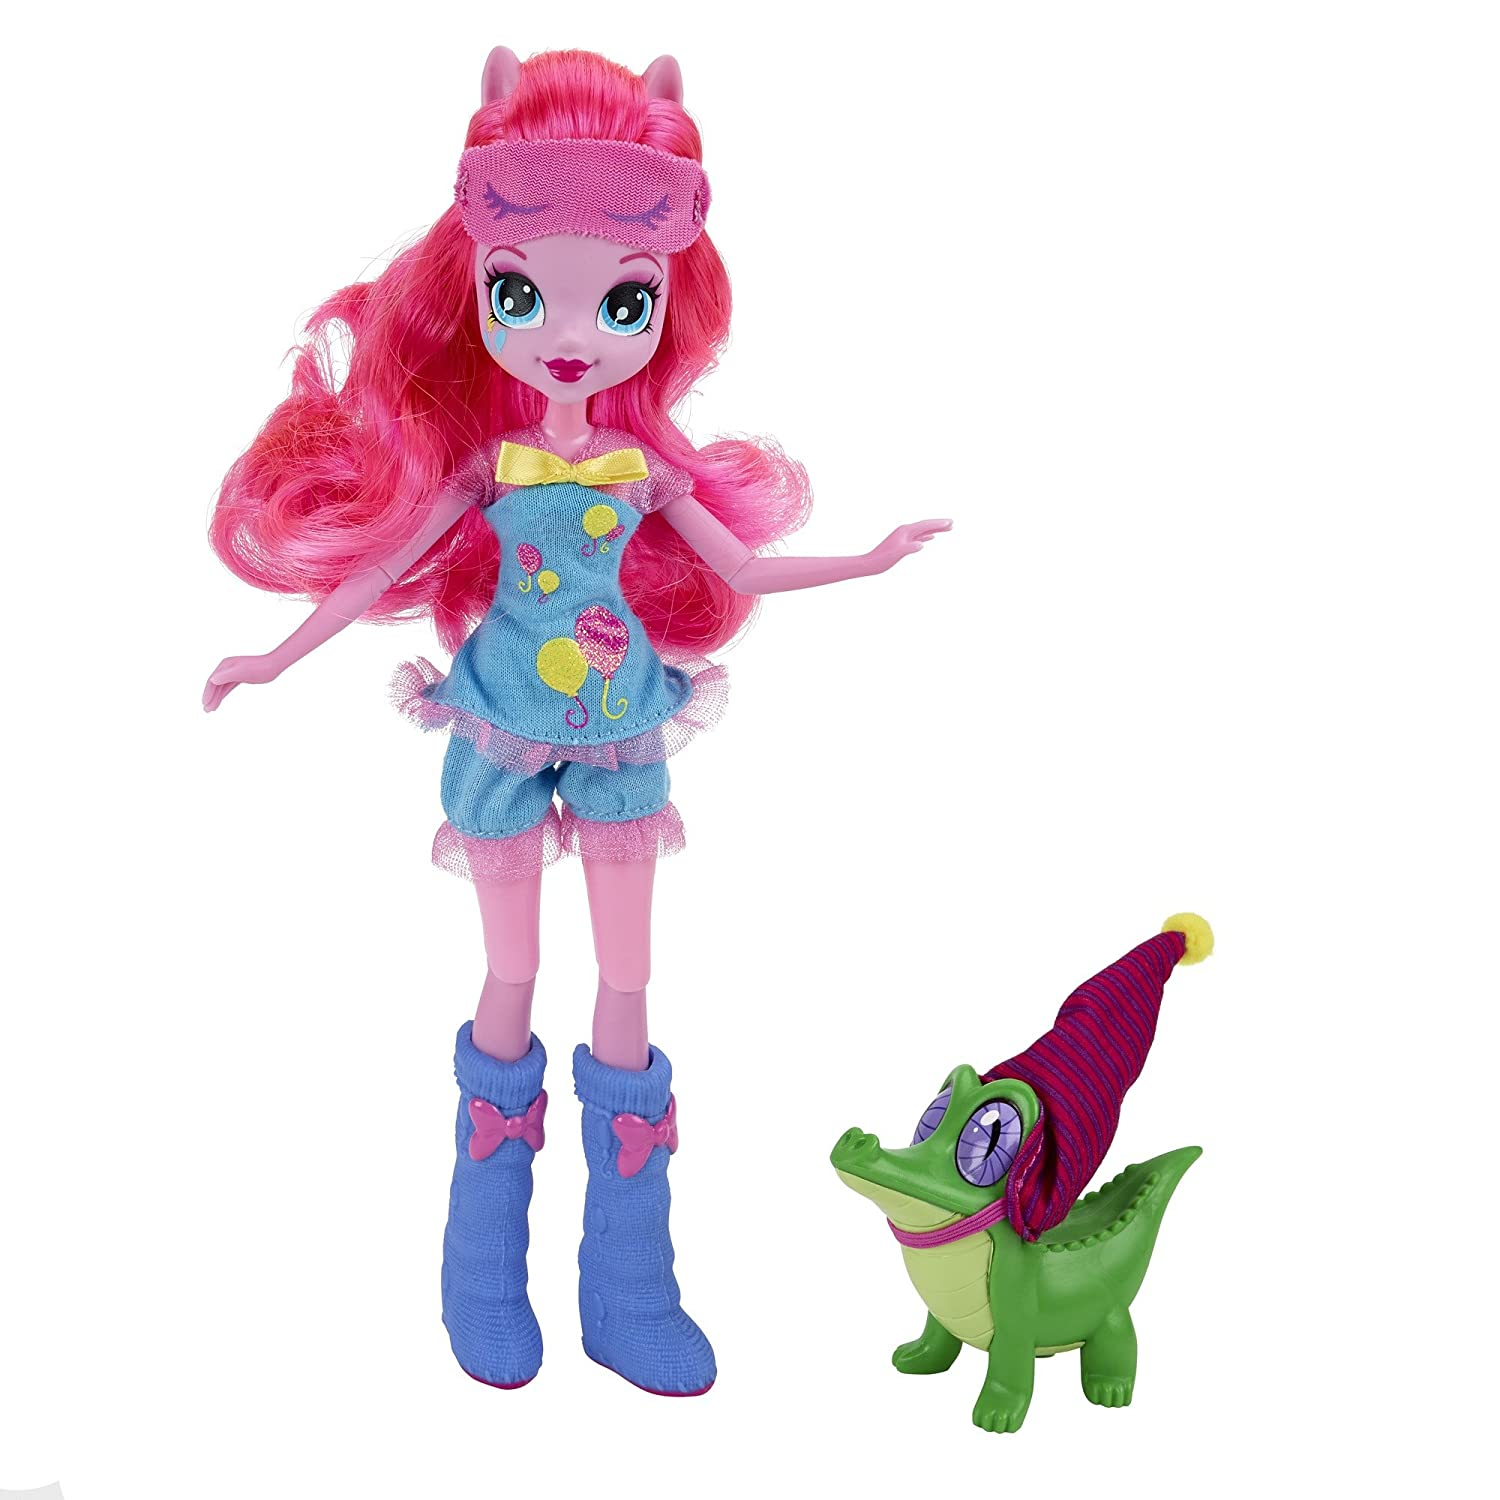 Amazon.es: Hasbro Juego de muñeca Rainbow Rocks con Pinkie Pie and Gummy Snap B1071 My Little Pony Equestrian Girls: Juguetes y juegos